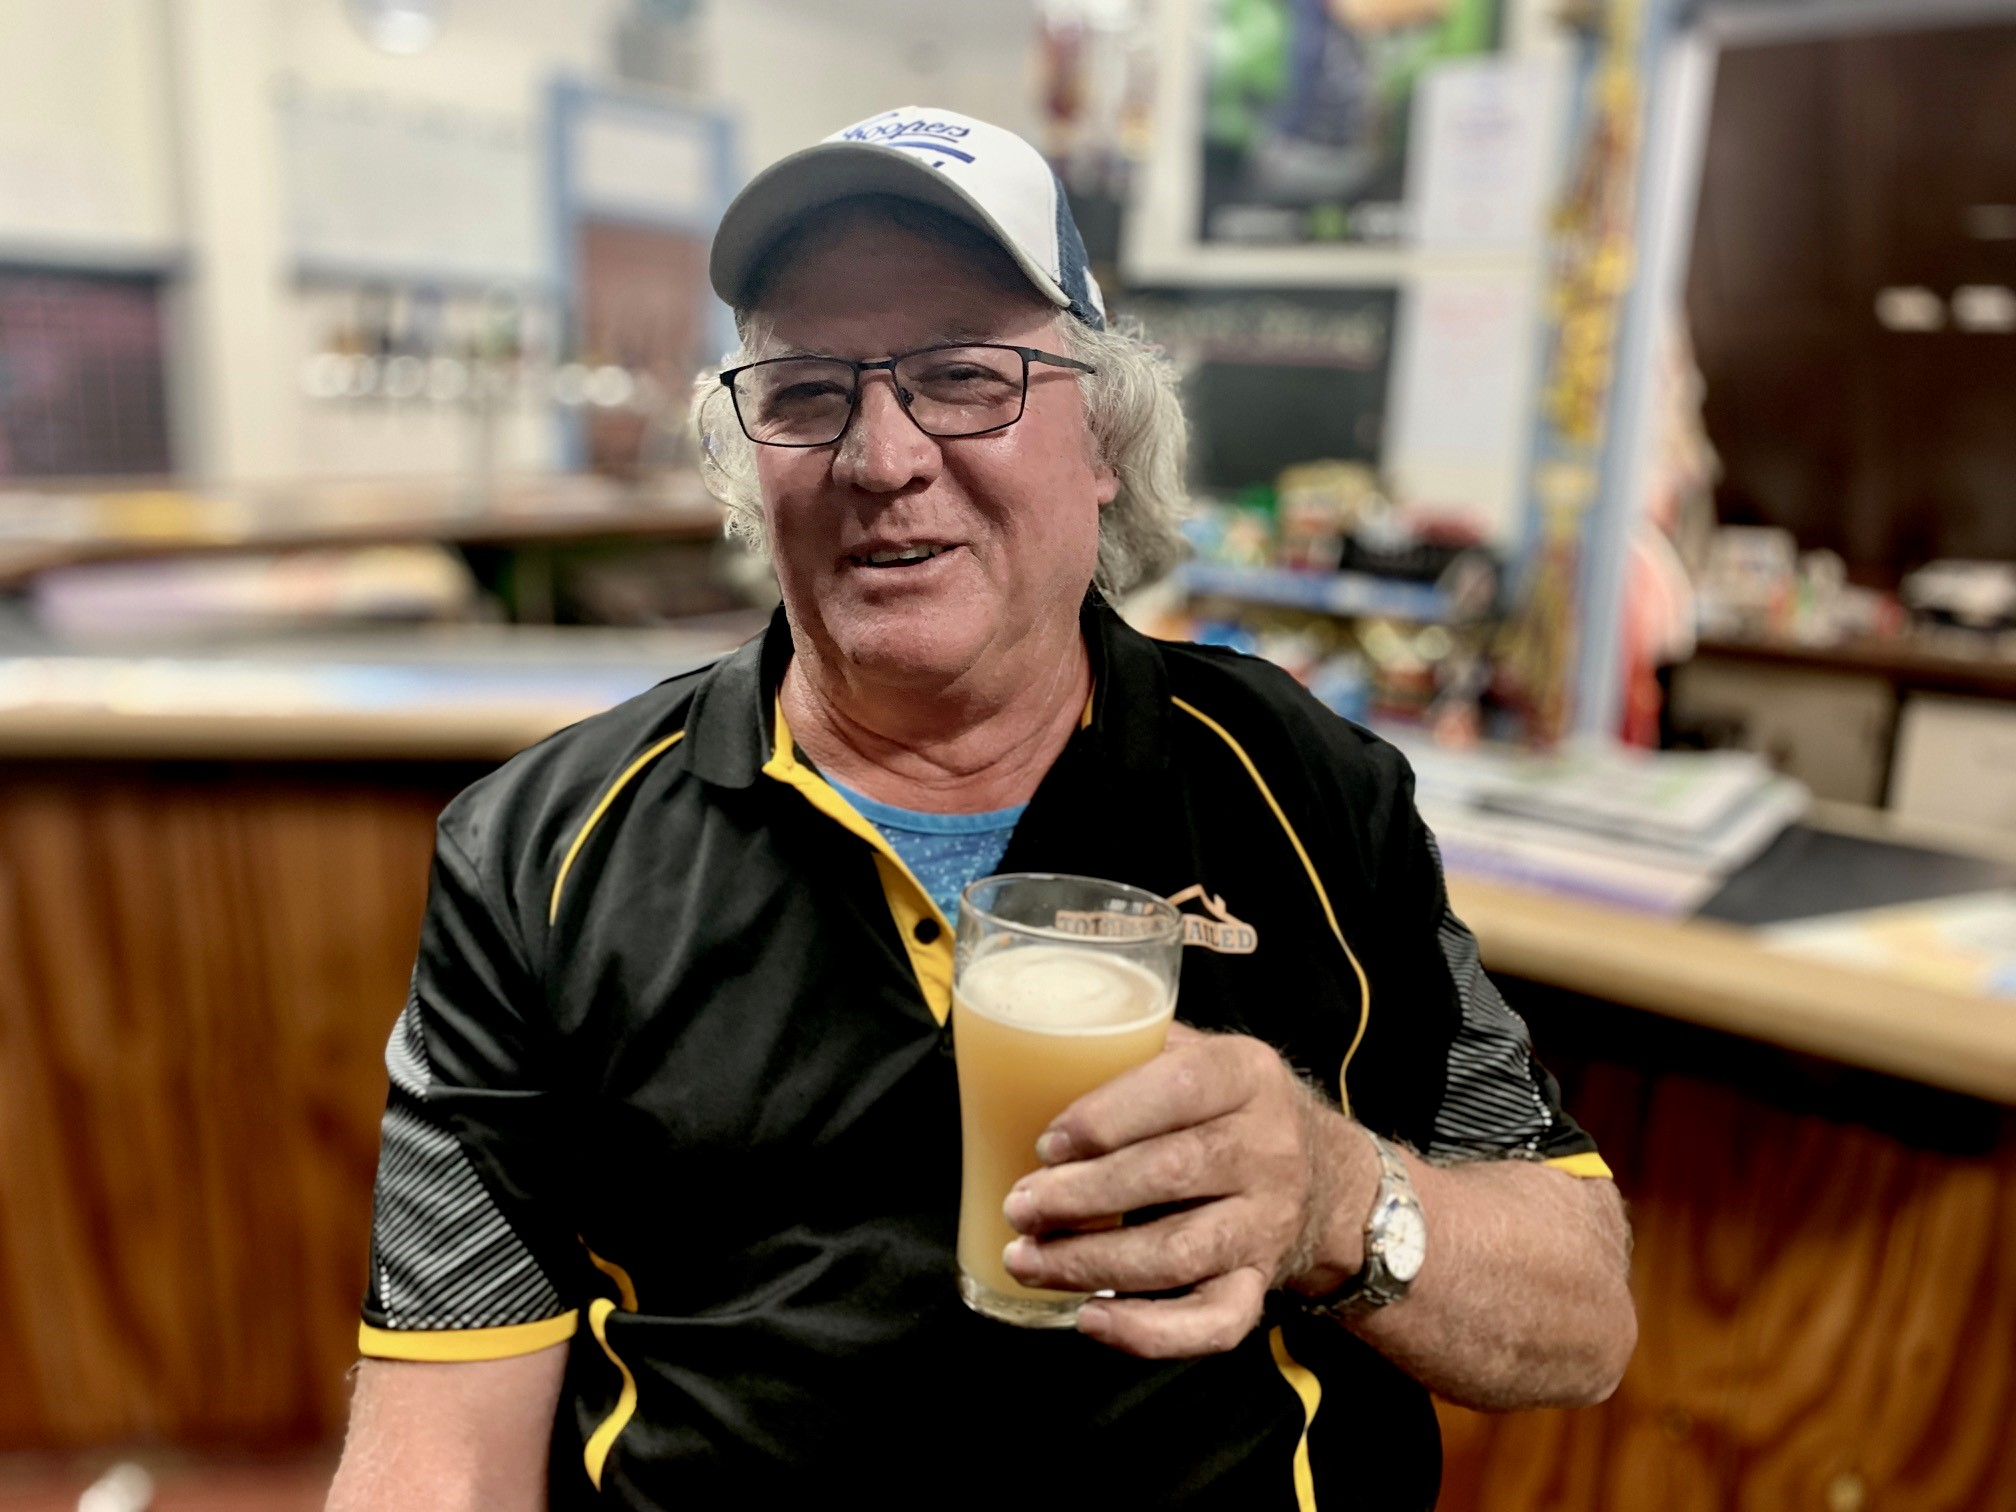 A man wearing a cap holding a beer.